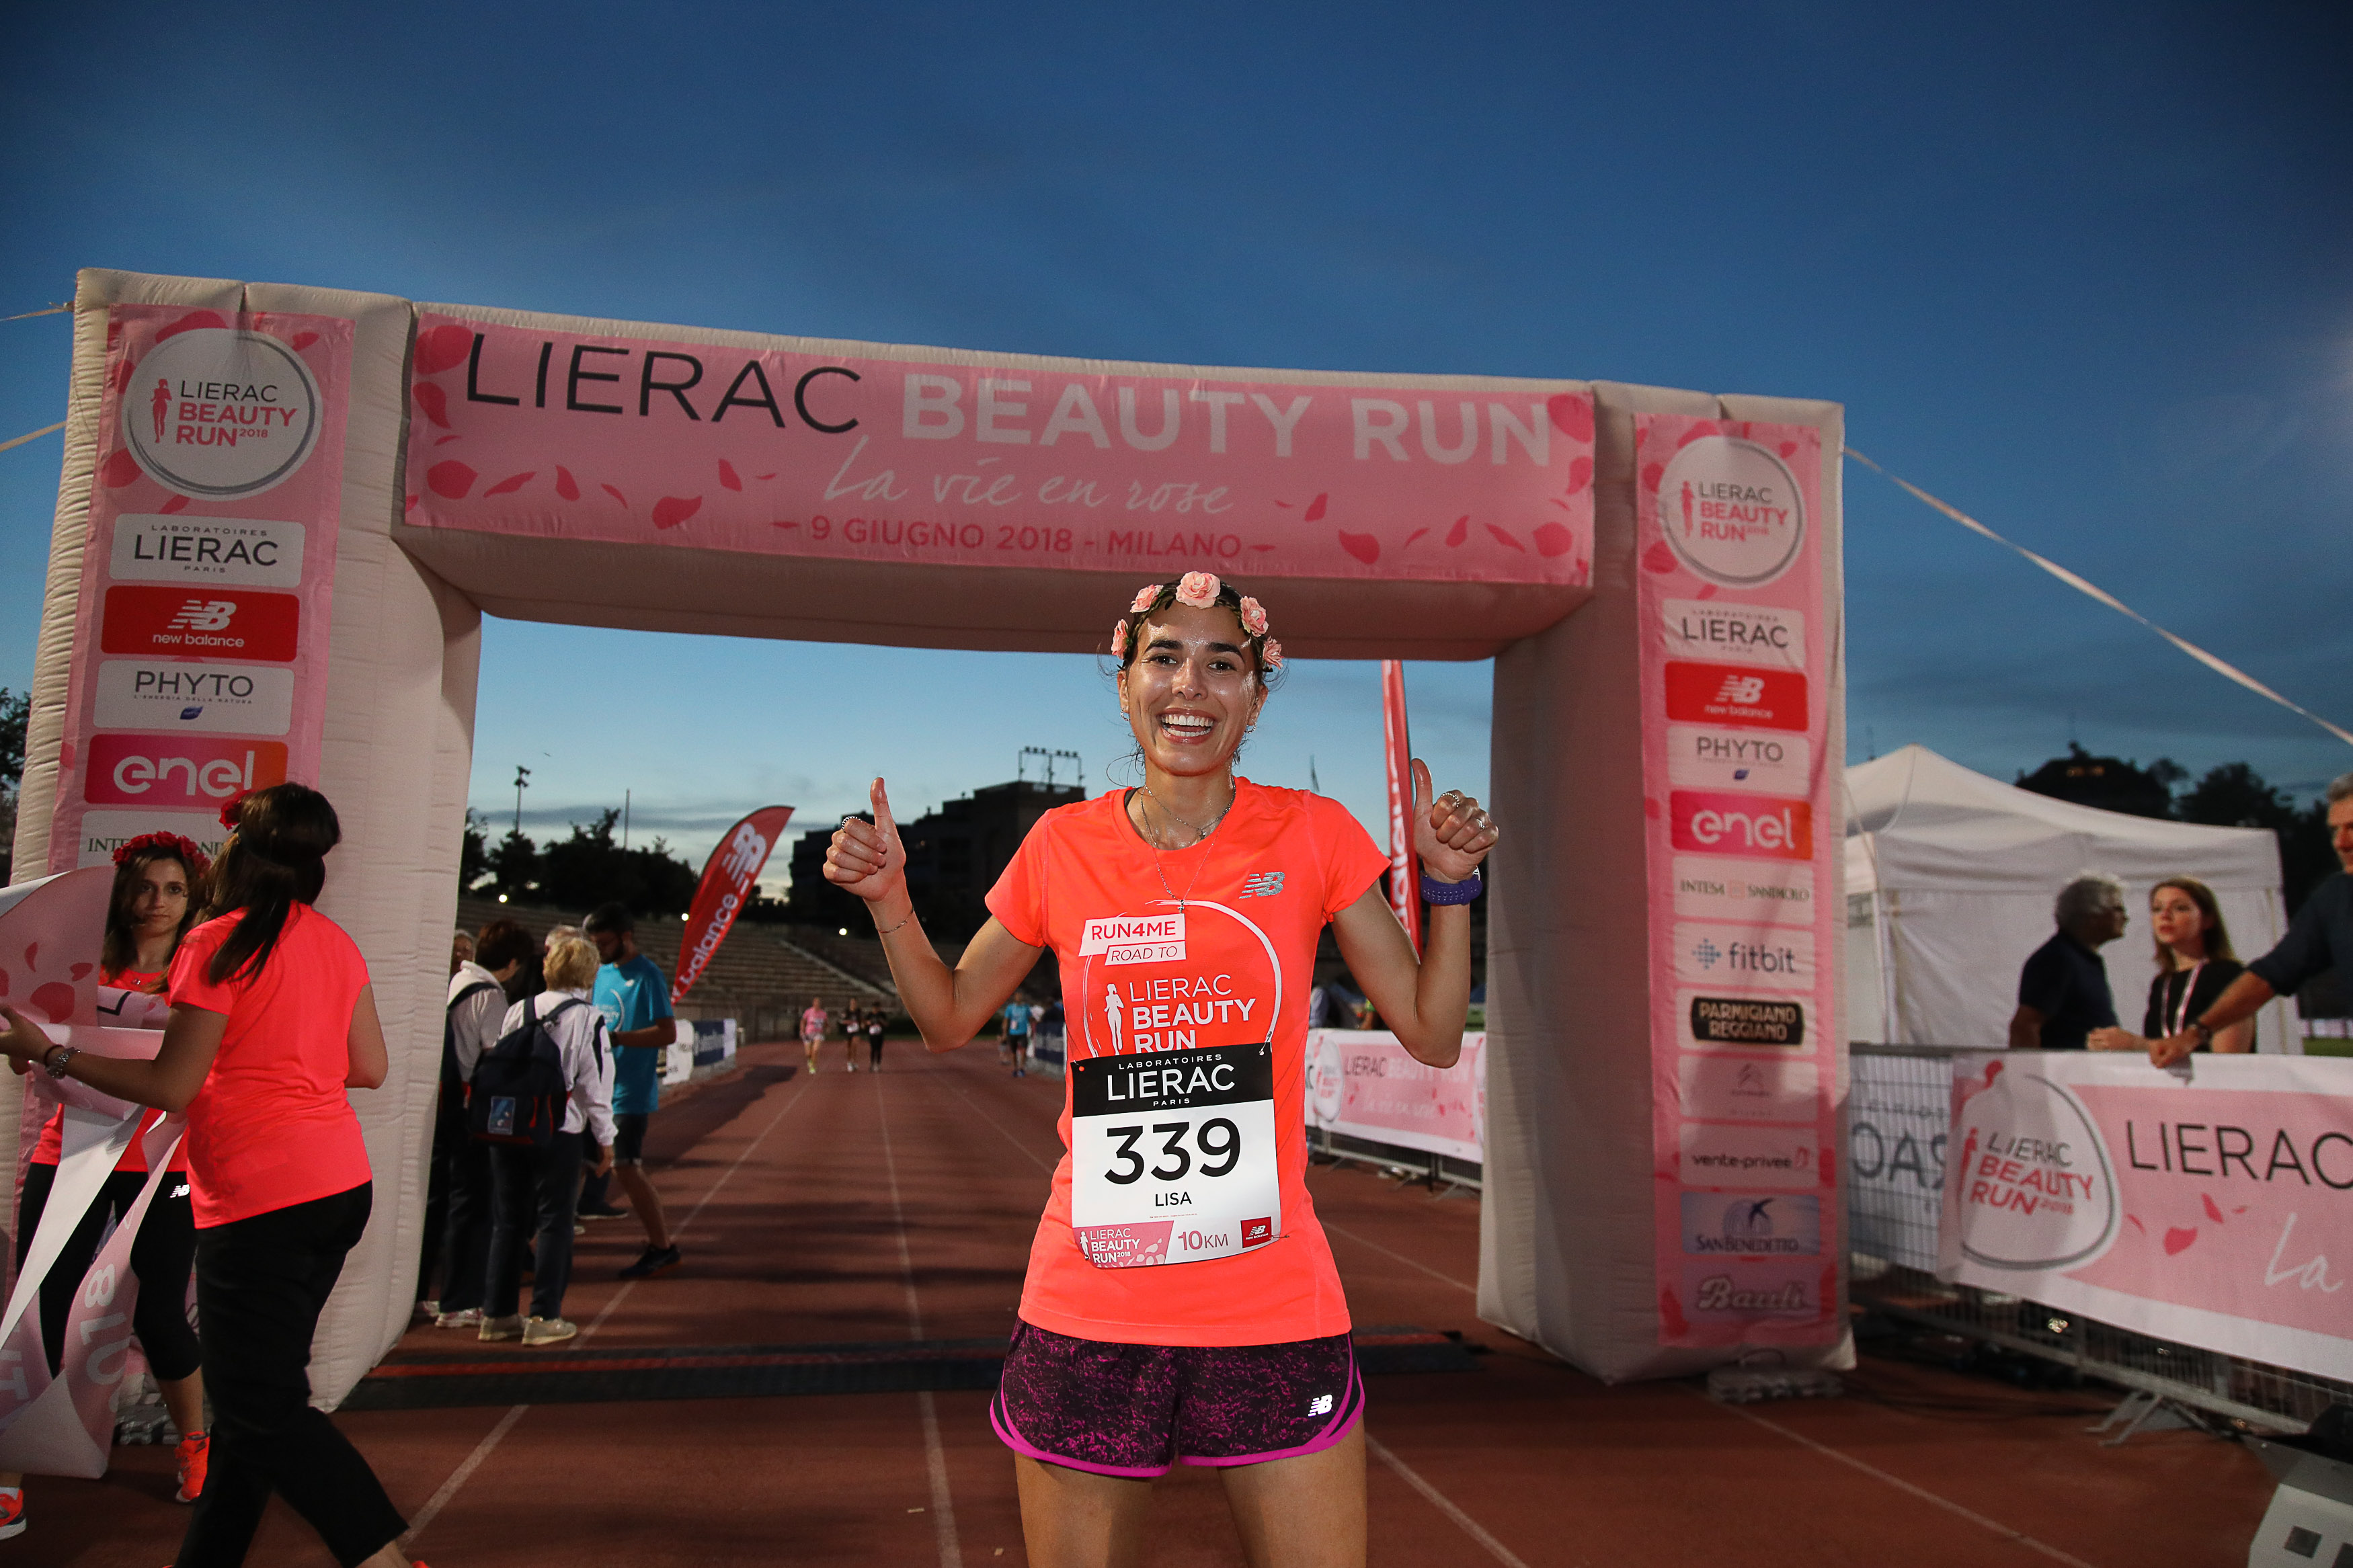 Lierac Beauty Run al via l'8 giugno